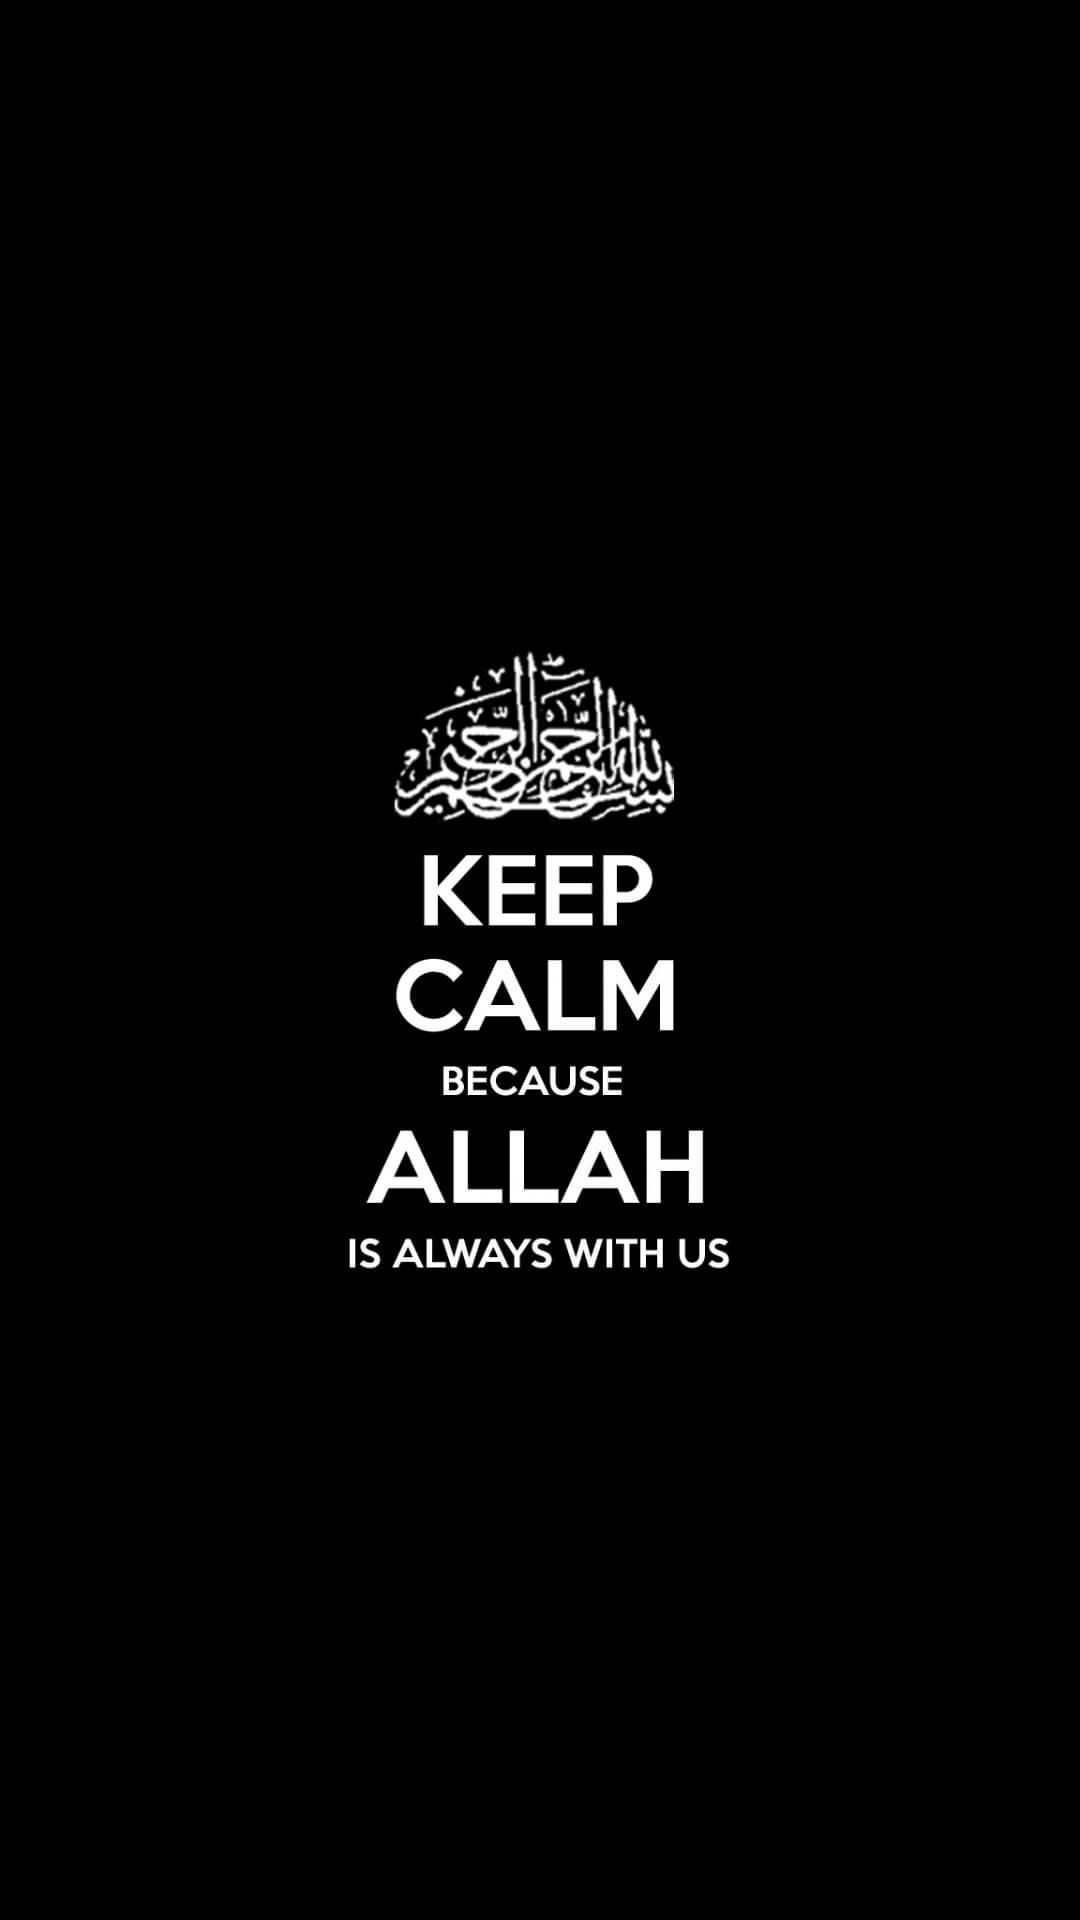 Quotes From Quran Wallpaper Pinterest ...